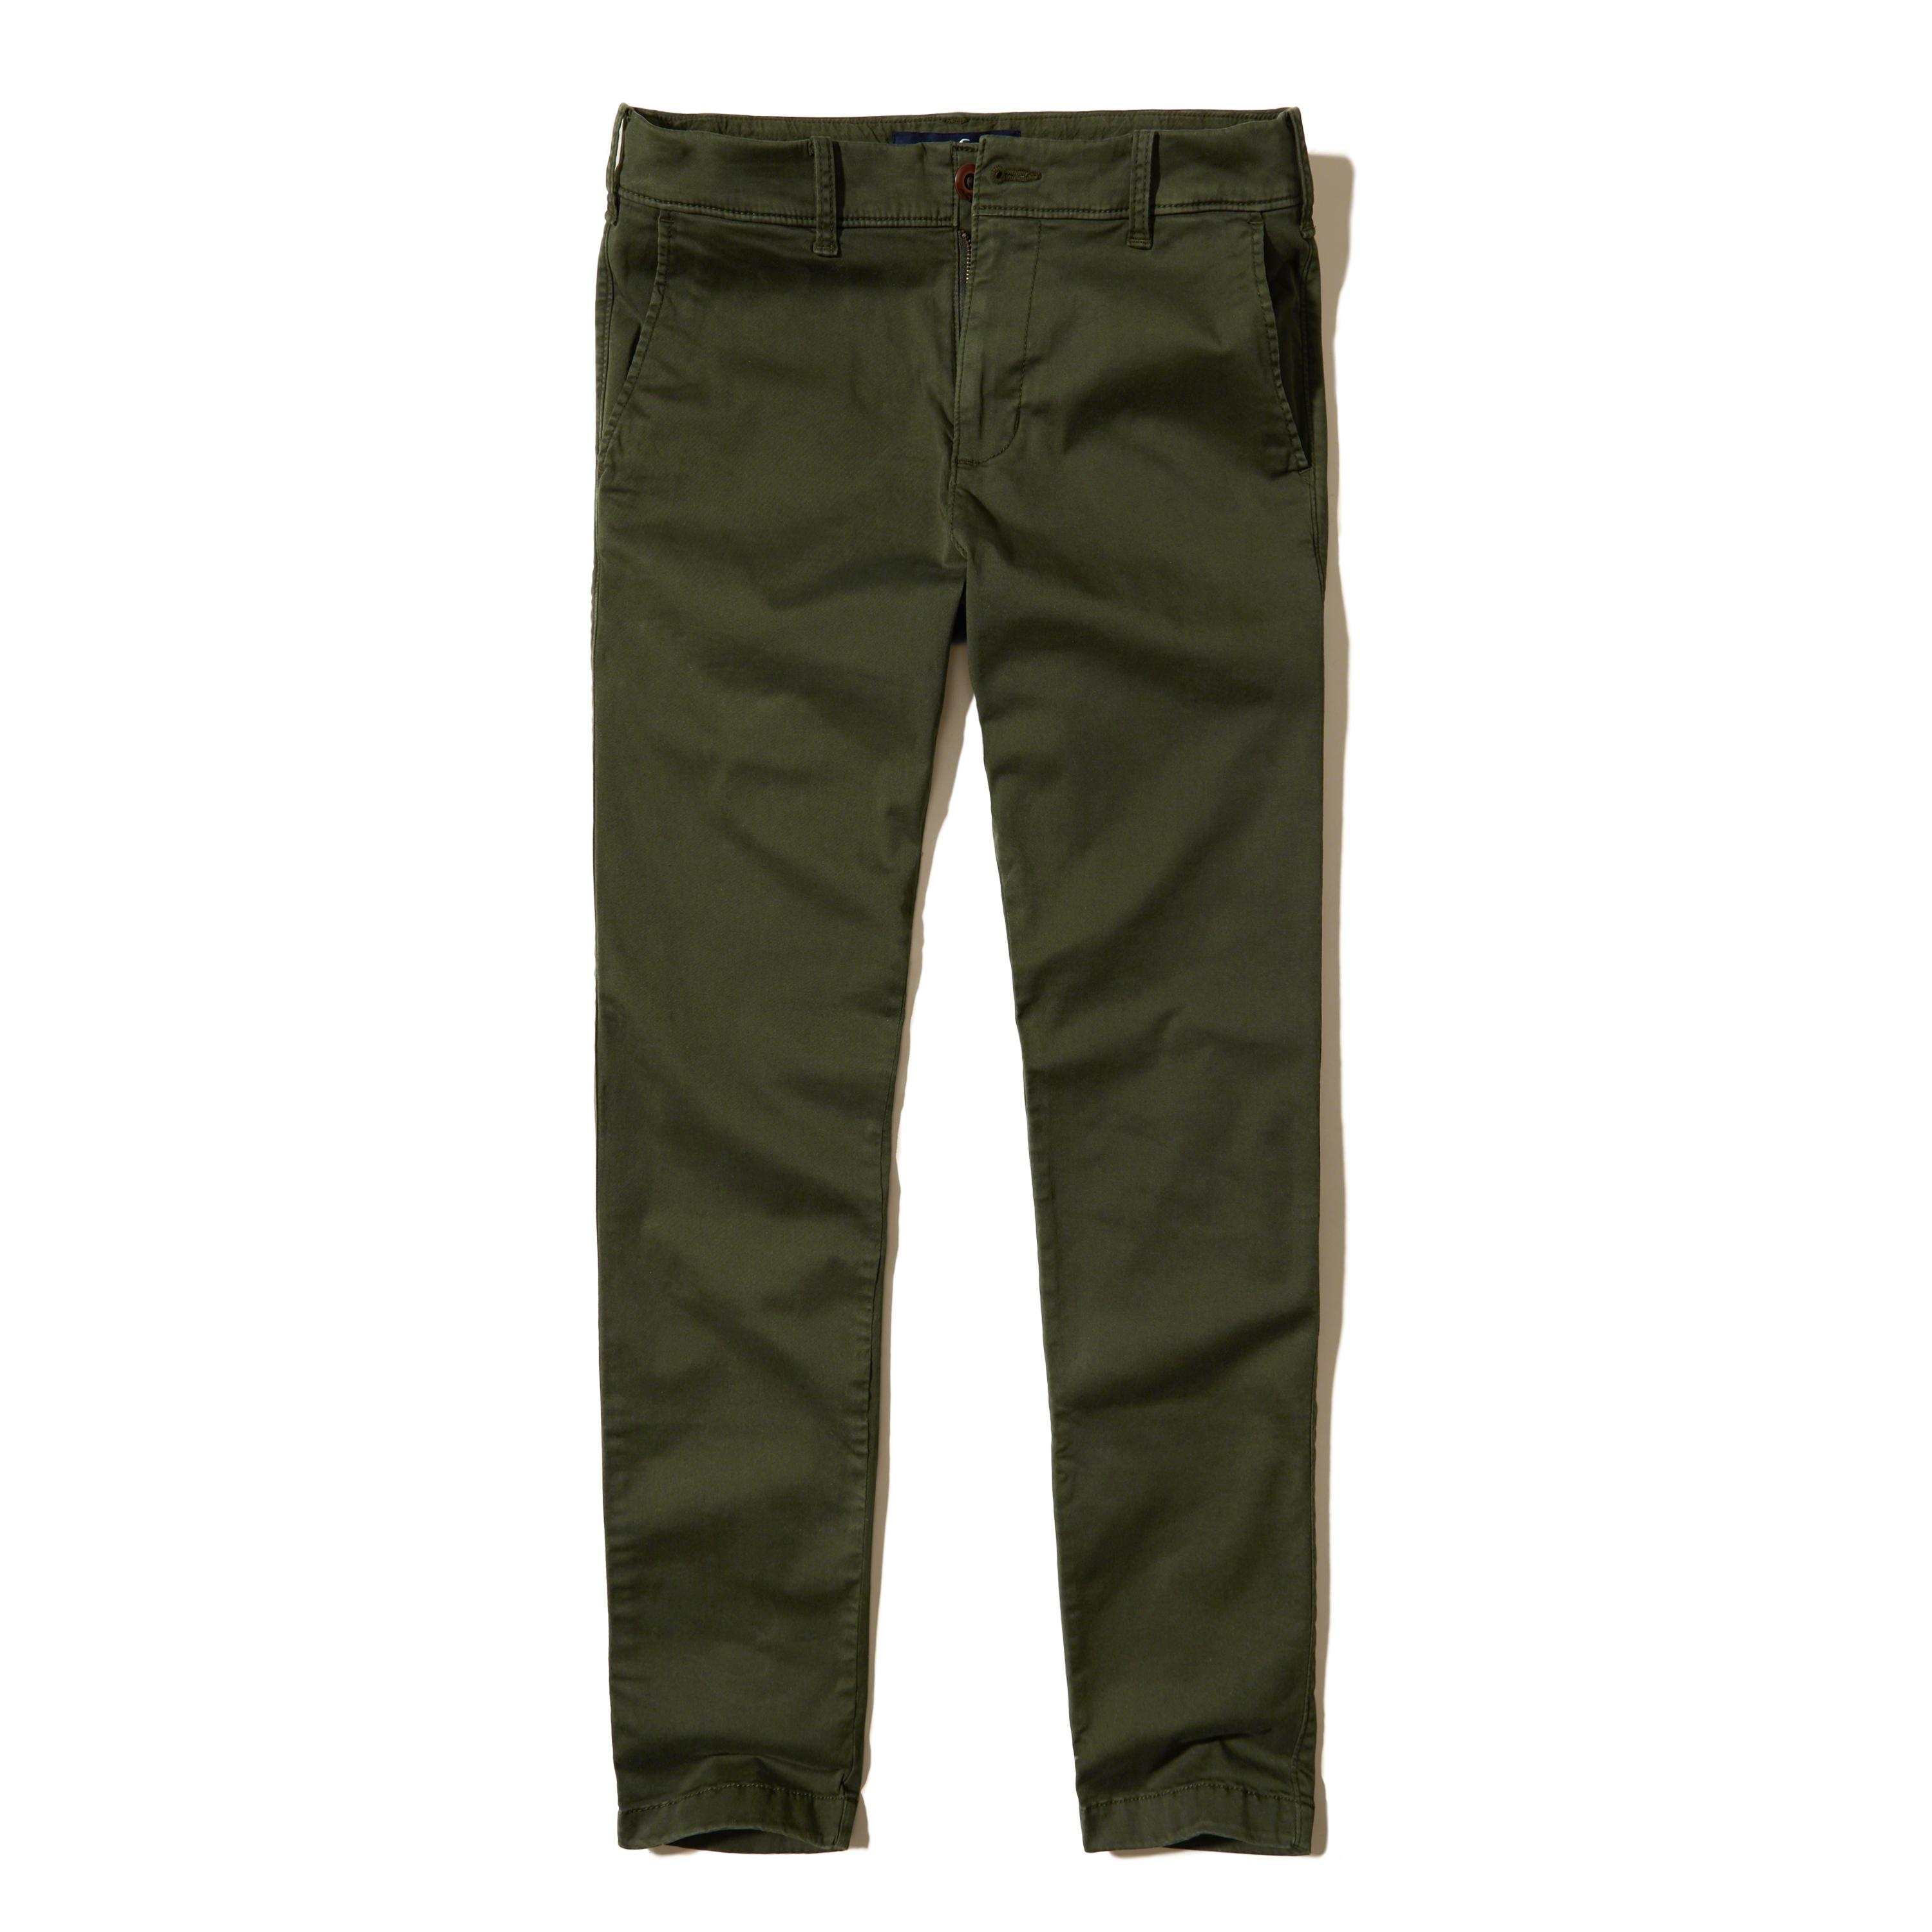 Lyst - Hollister Super Skinny Chino Pants in Green for Men